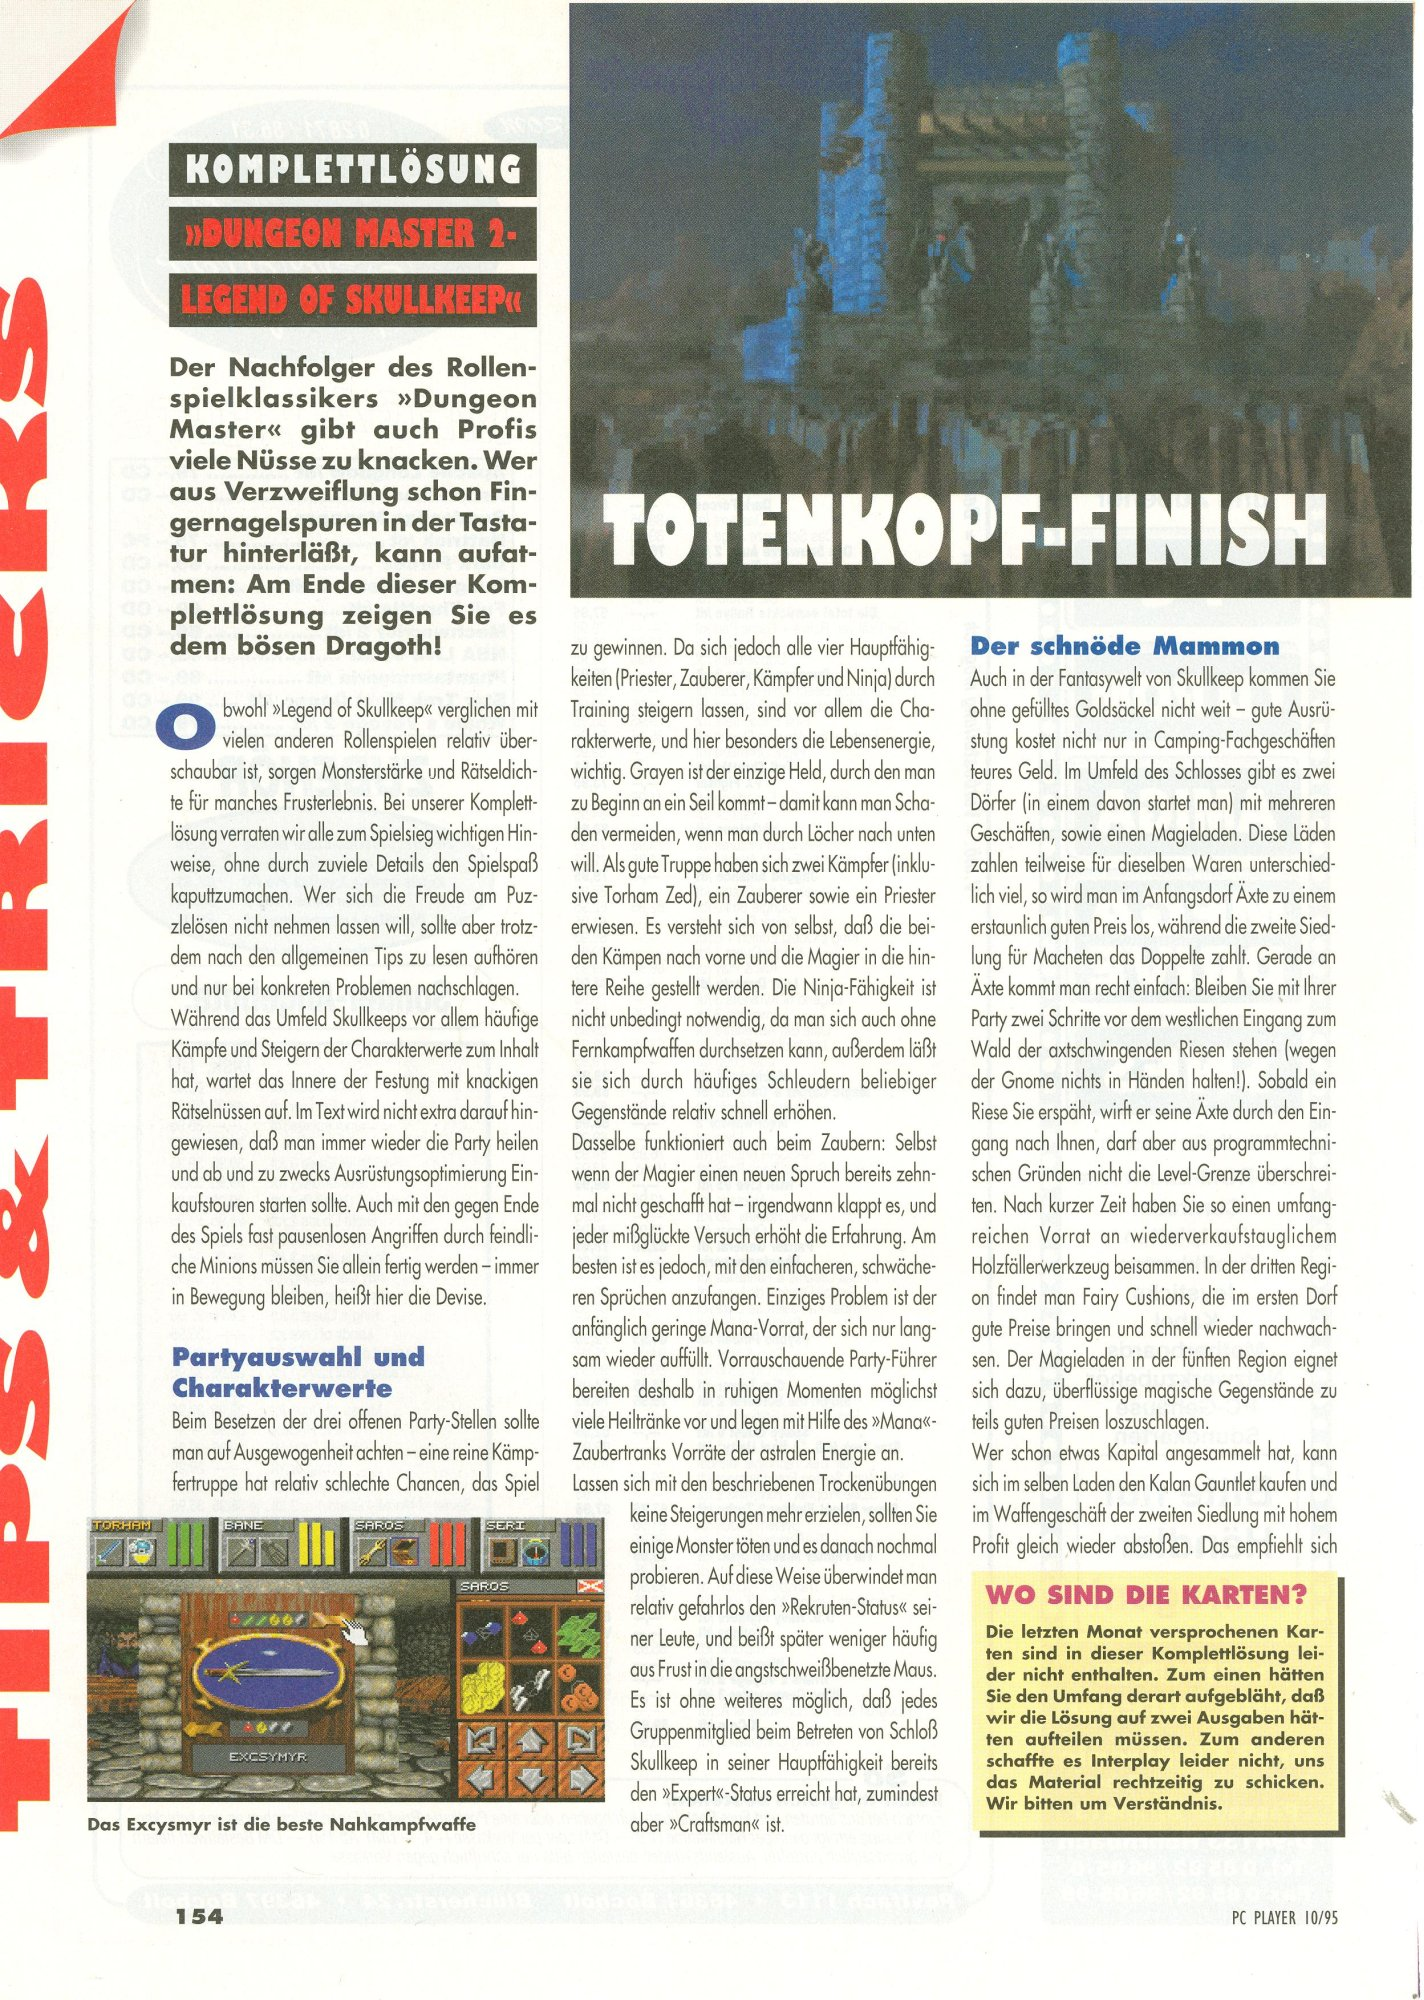 Dungeon Master II for PC Guide published in German magazine 'PC Player', October 1995, Page 154